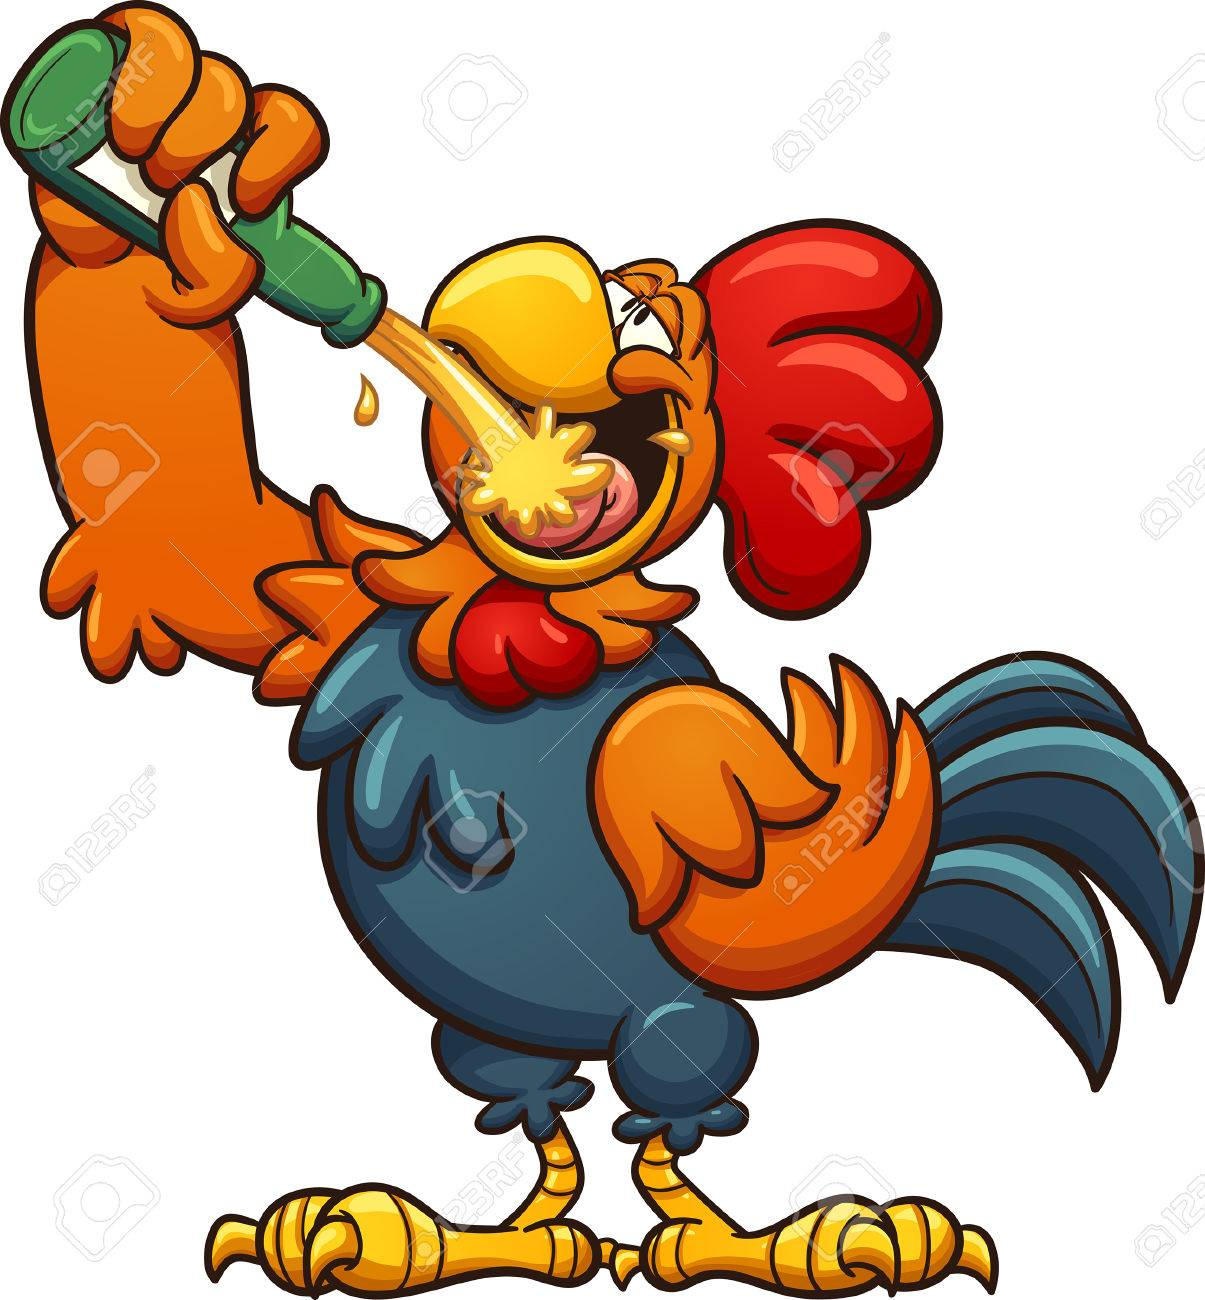 hight resolution of drunk cartoon rooster drinking a beer vector clip art illustration with simple gradients all